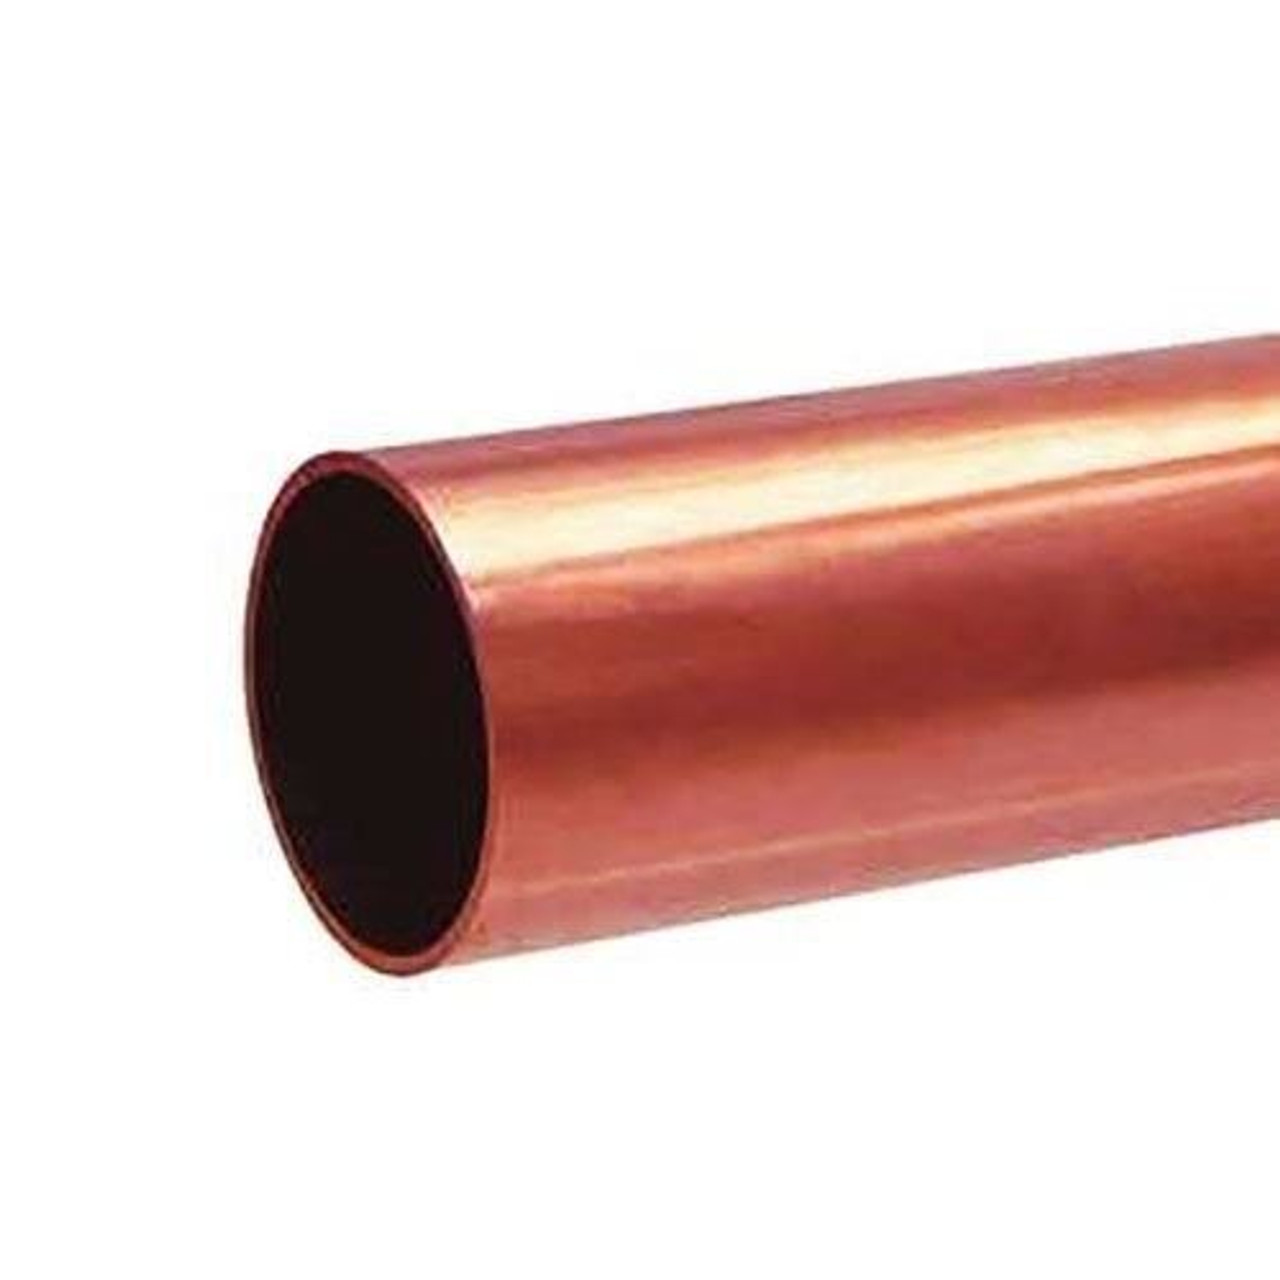 Copper Tube, 0.875 (3/4 NPS) x 24 inches, Type K